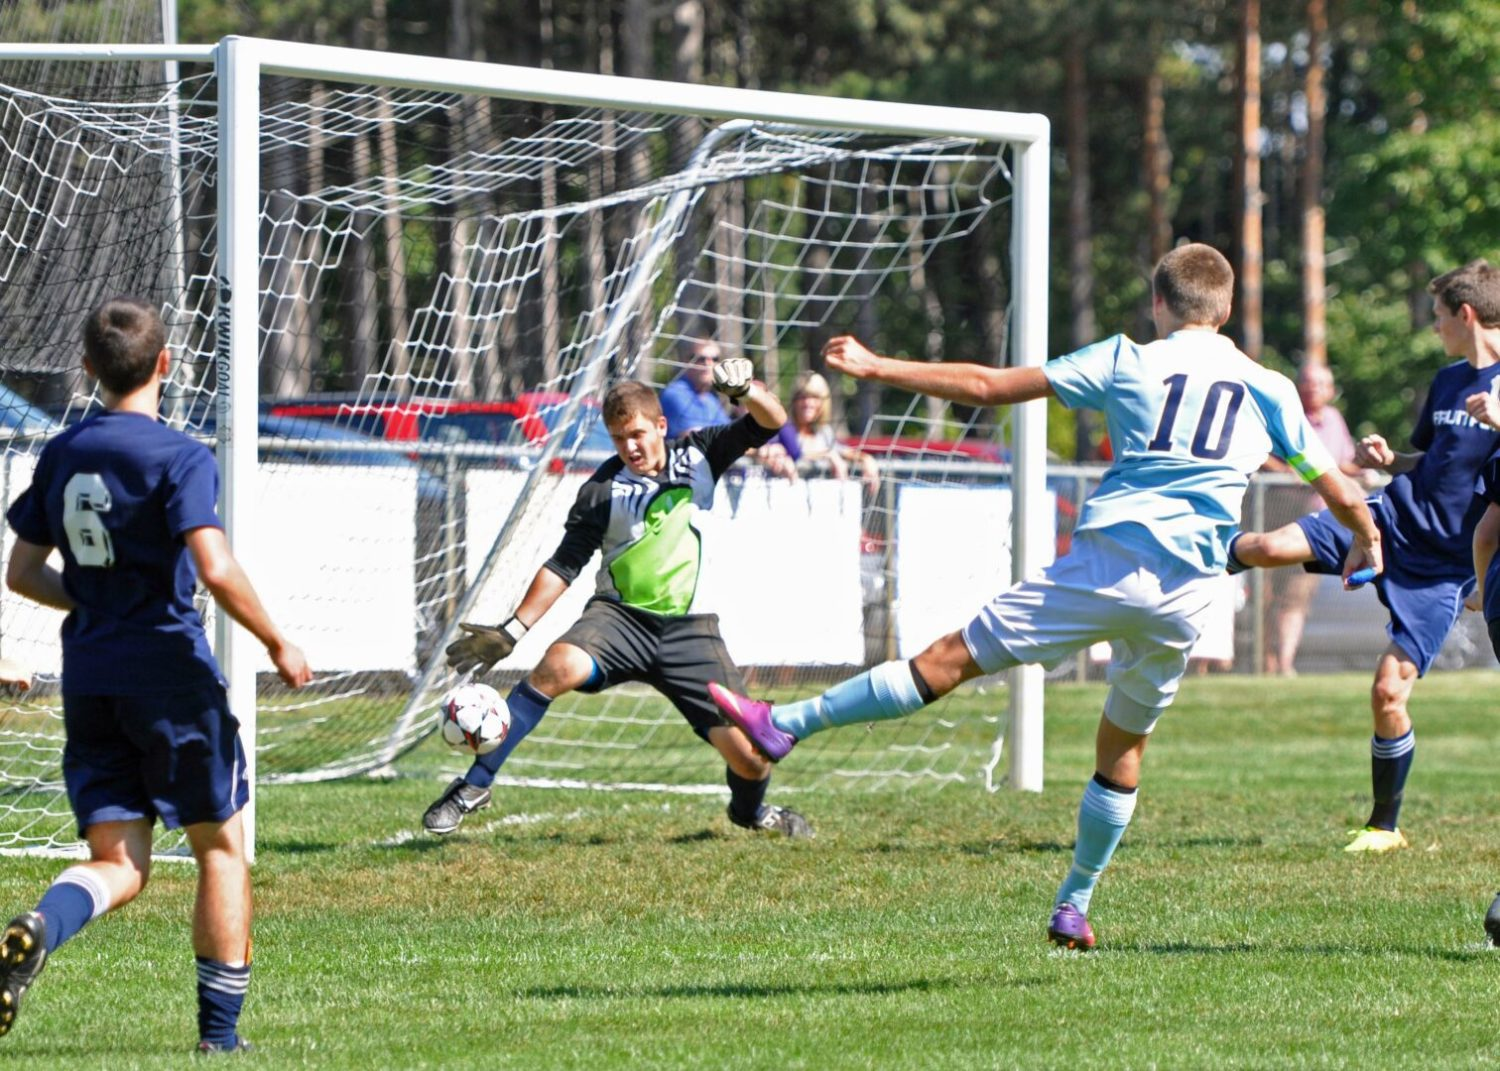 Late second half push lifts Mona Shores over Fruitport in boys soccer